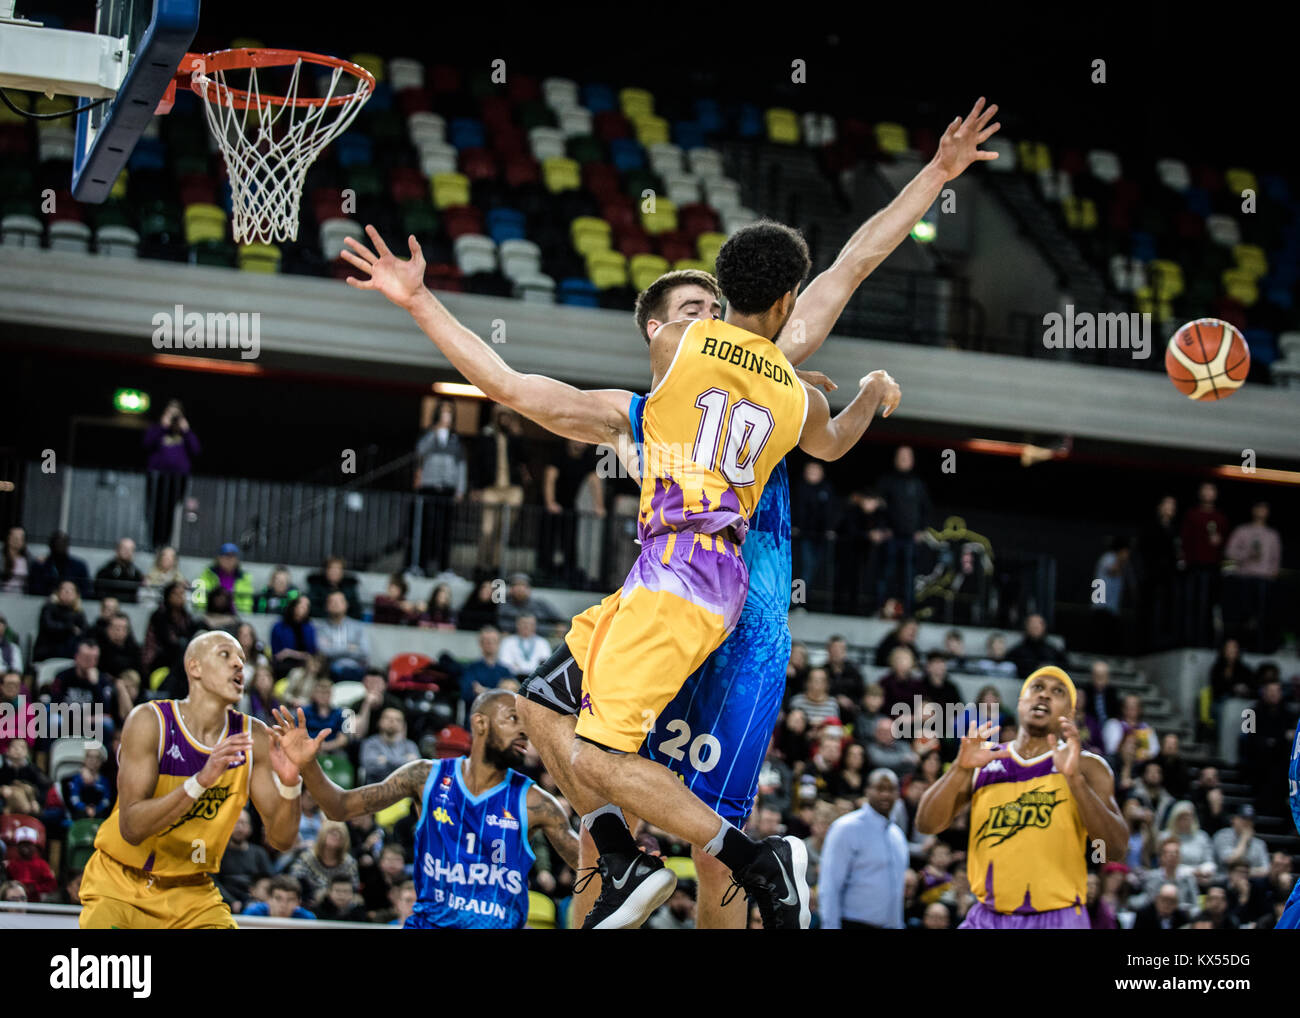 Copper Box Arena, London, UK, 7th Jan 2018.  London Lions v Sheffield Sharks British Basketball League game in the - Stock Image